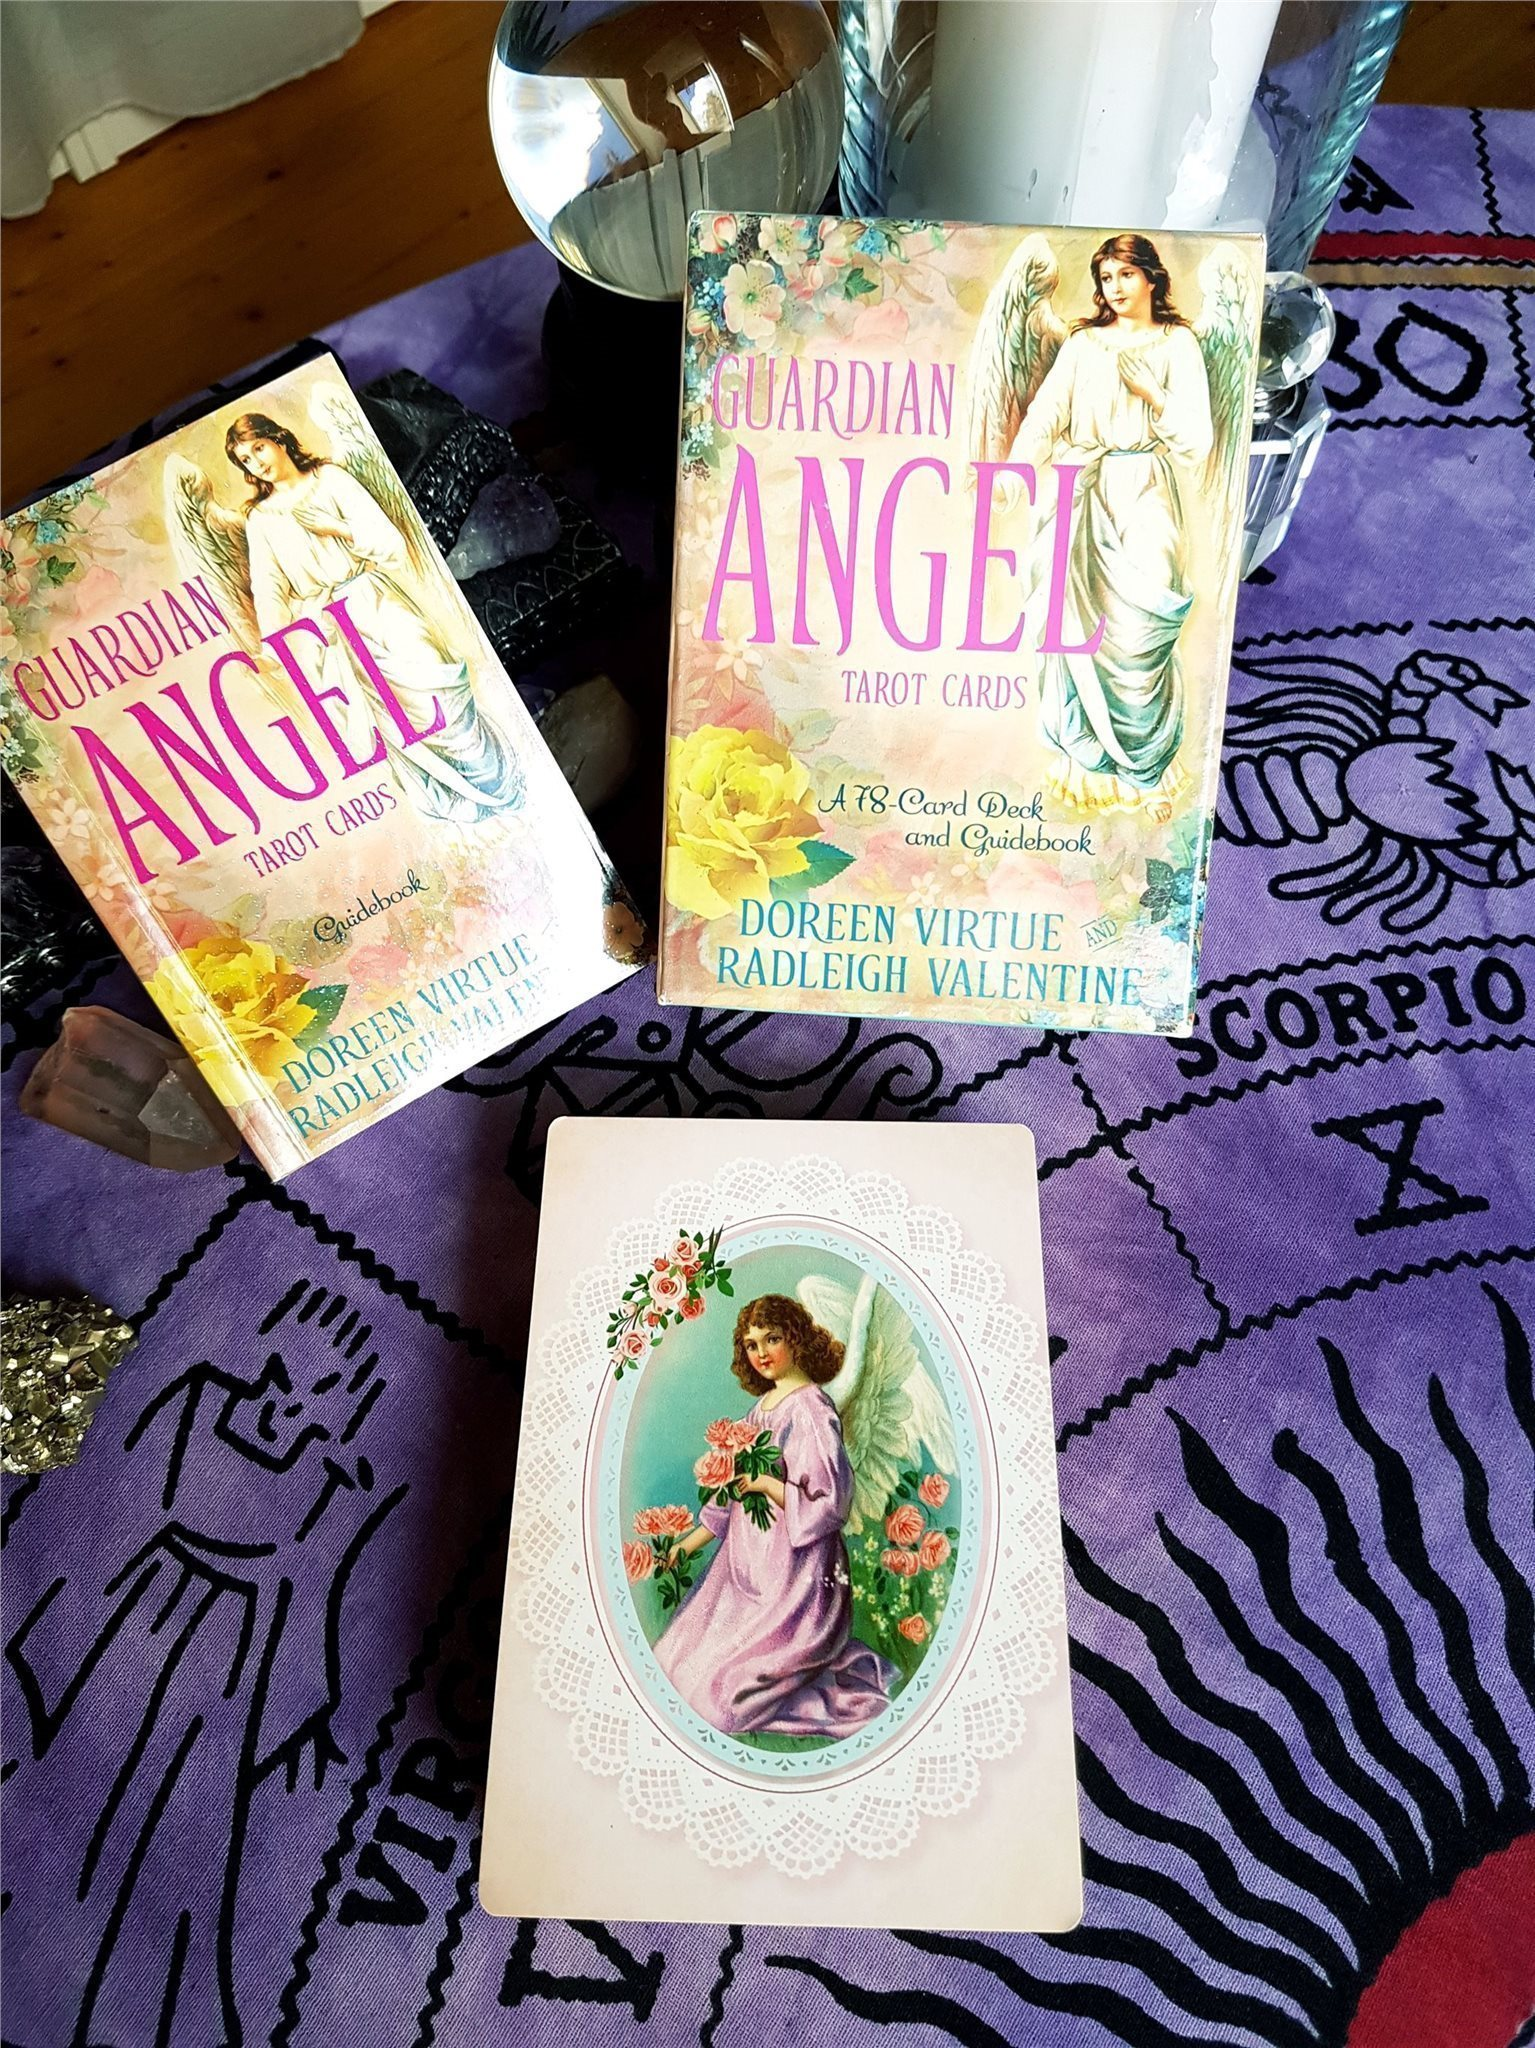 NY INPLASTAD - Guardian Angel Tarot Cards av Doreen Virtue - Oracle New Age.